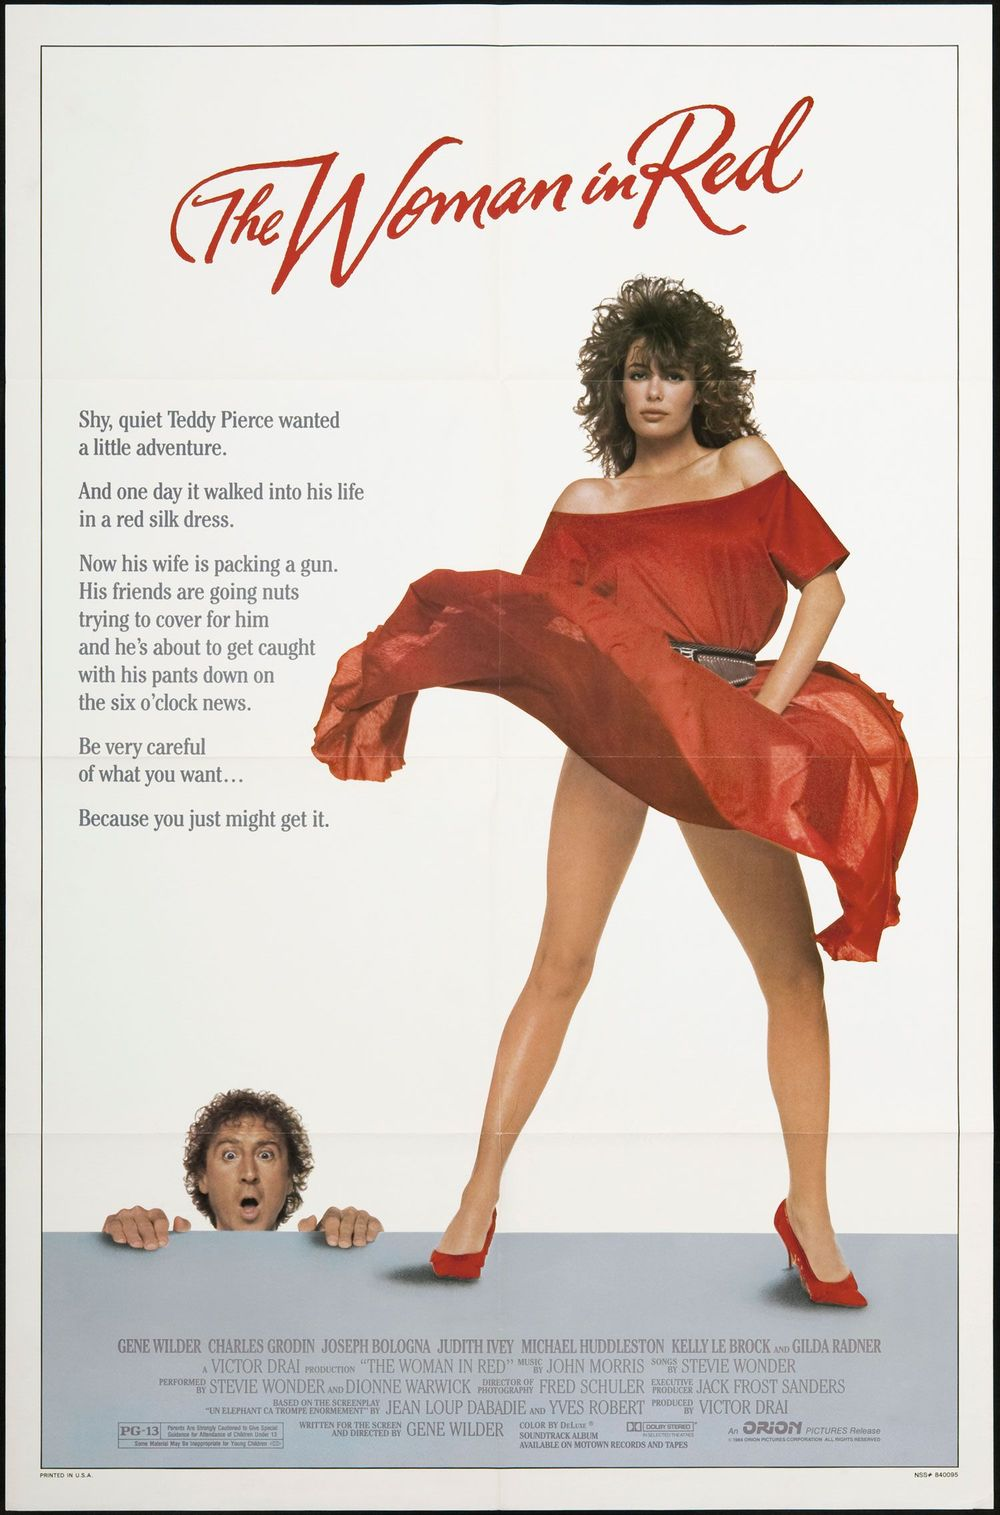 162310036_the-woman-in-red-1984-original-u-s-one-sheet-movie-.jpg